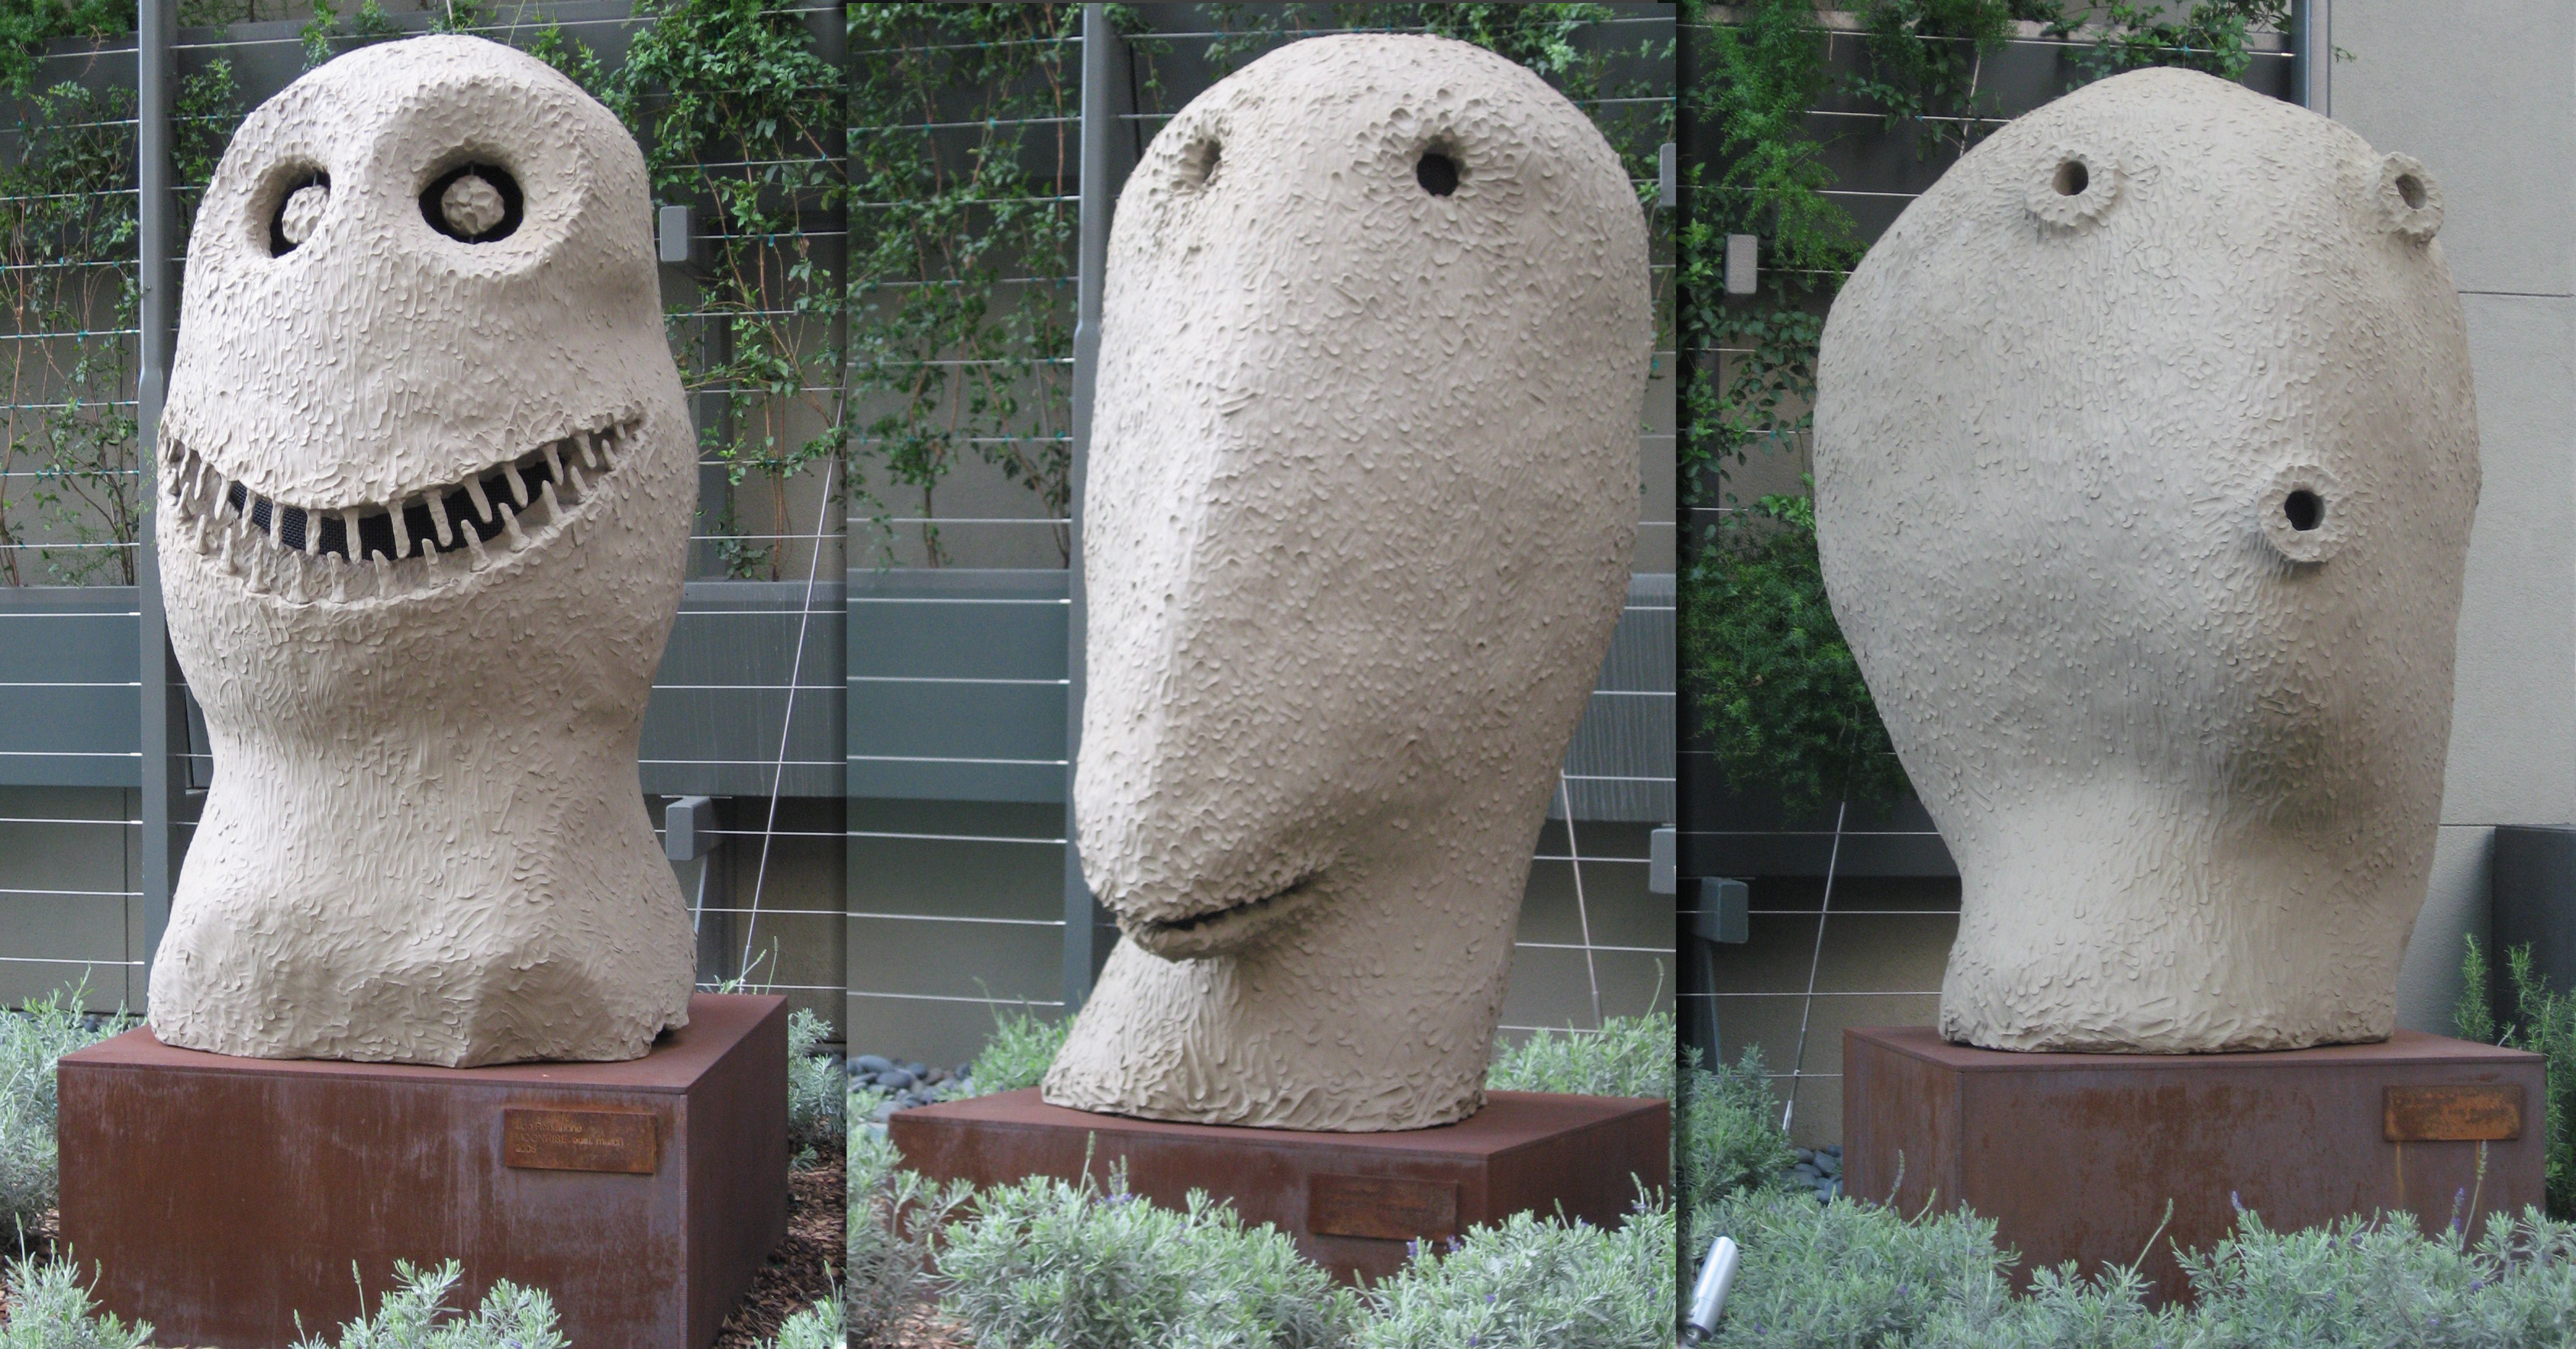 Moonrise_Sculptures_by_Ugo_Rondinone